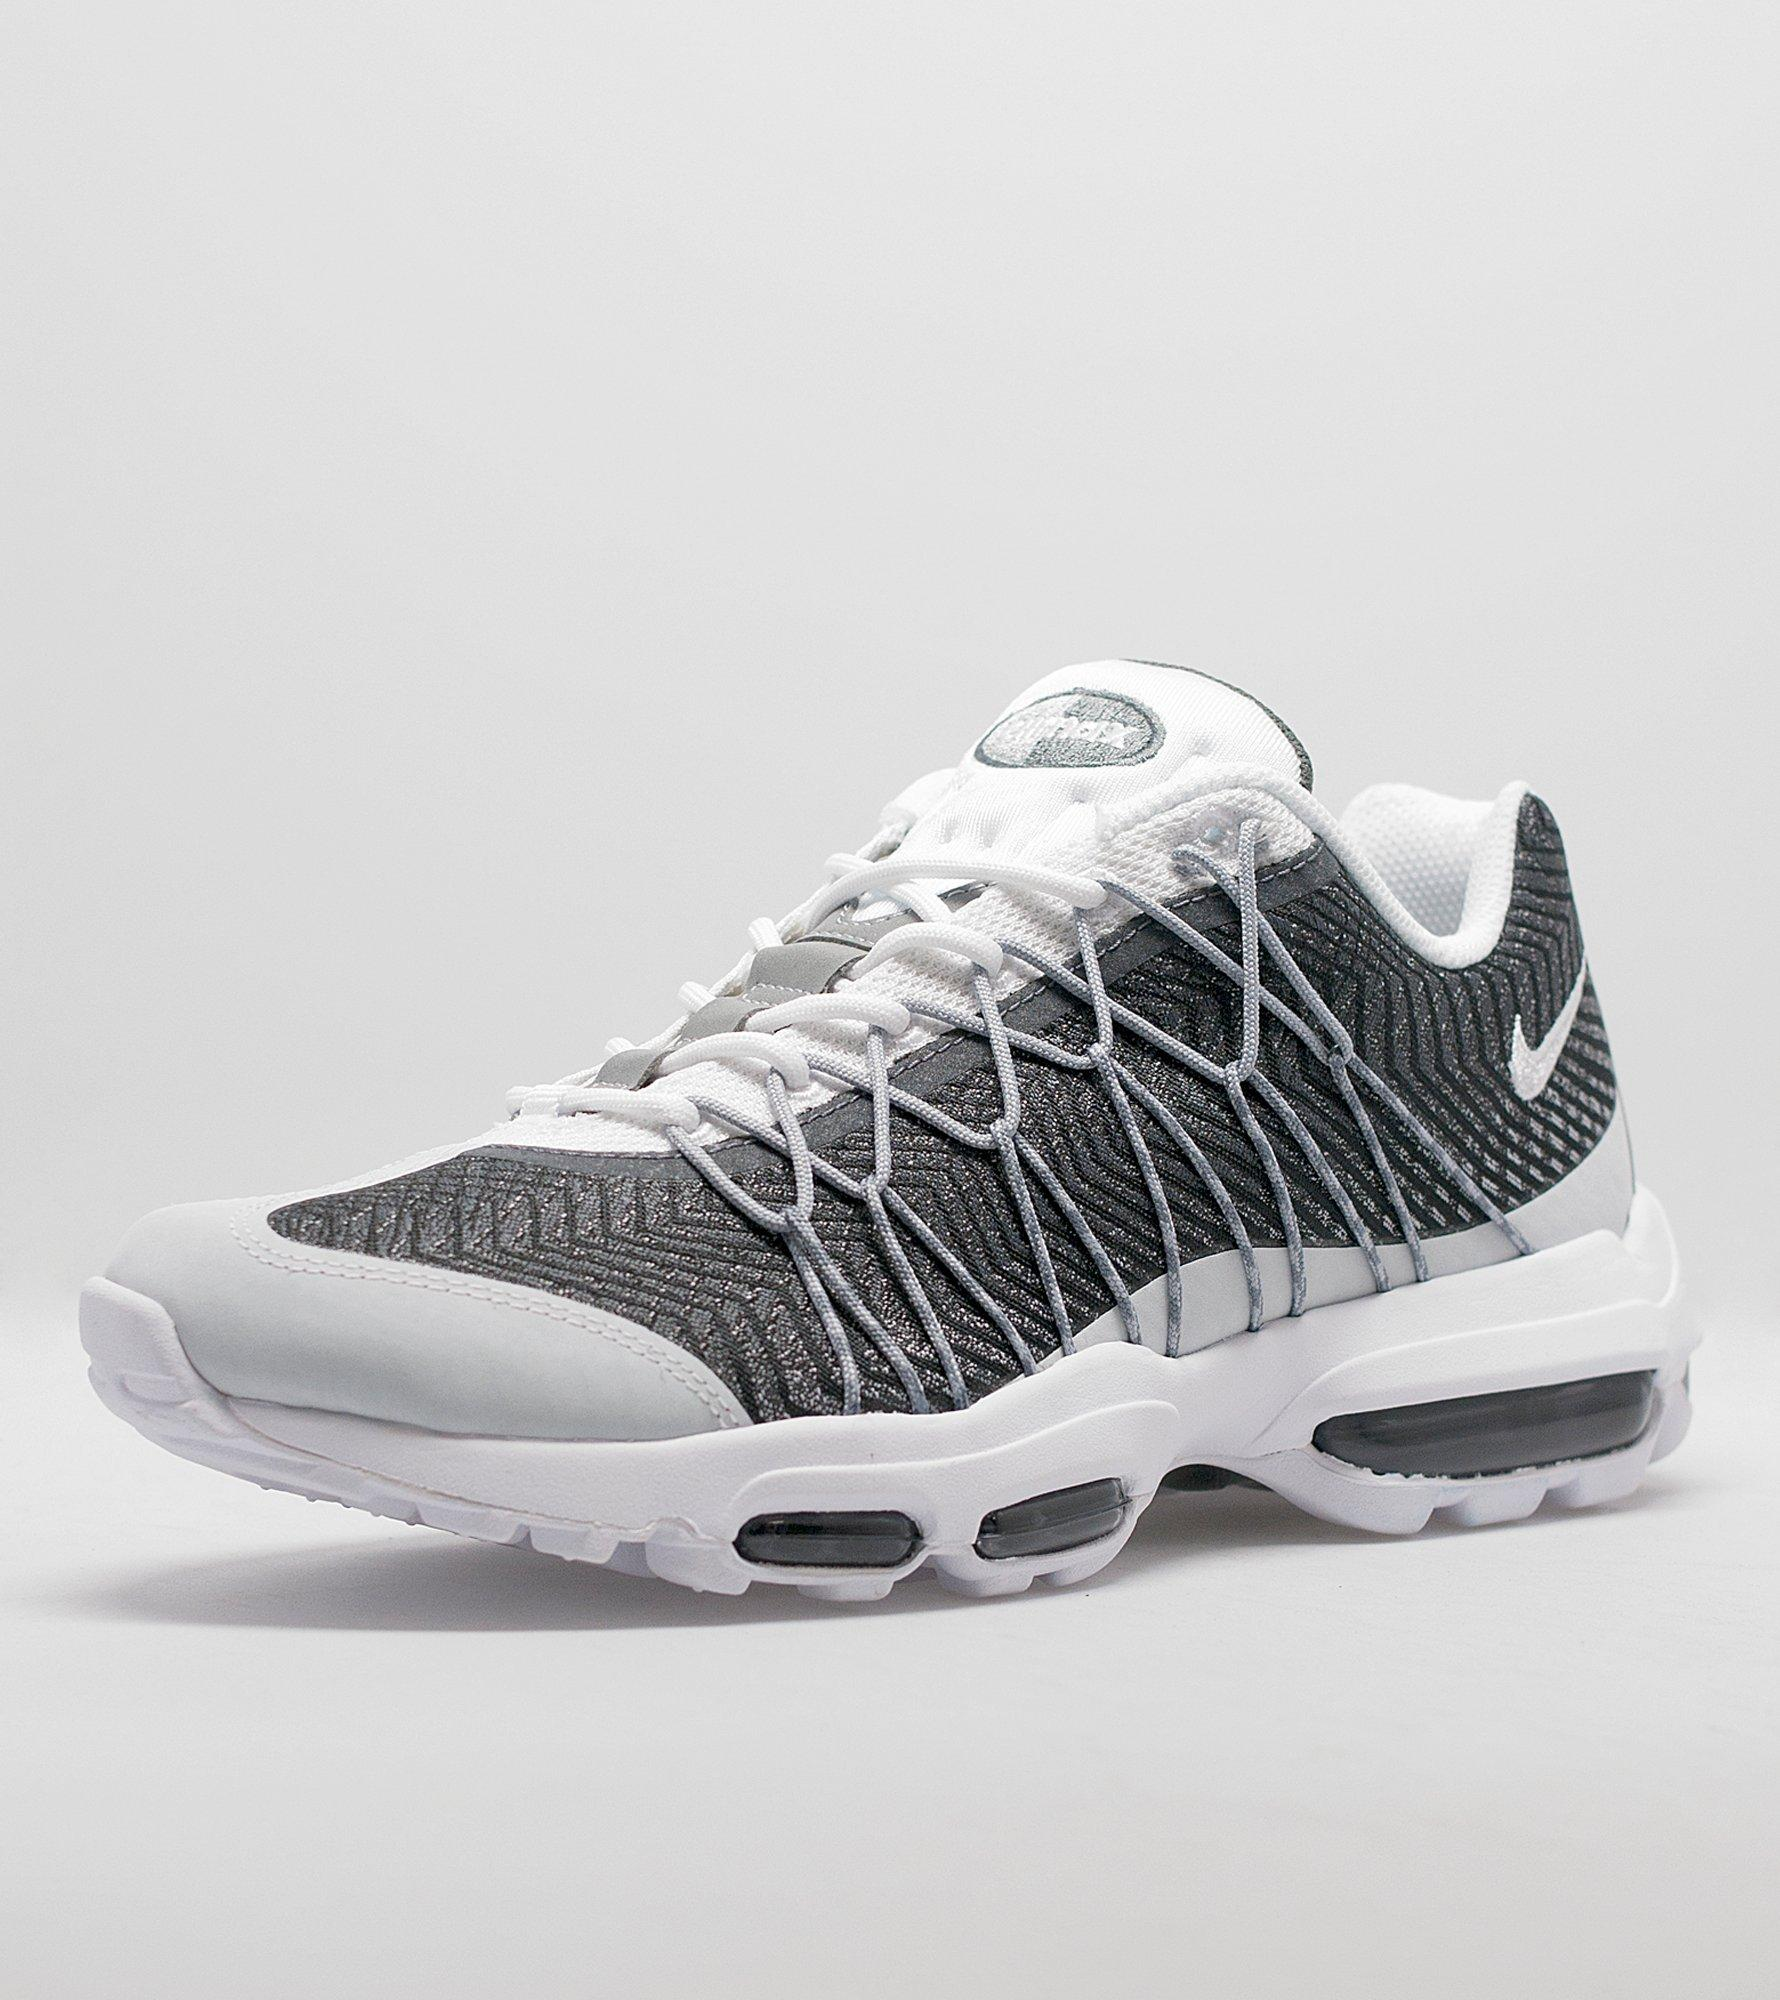 Nike Air Max 95 Ultra Women's